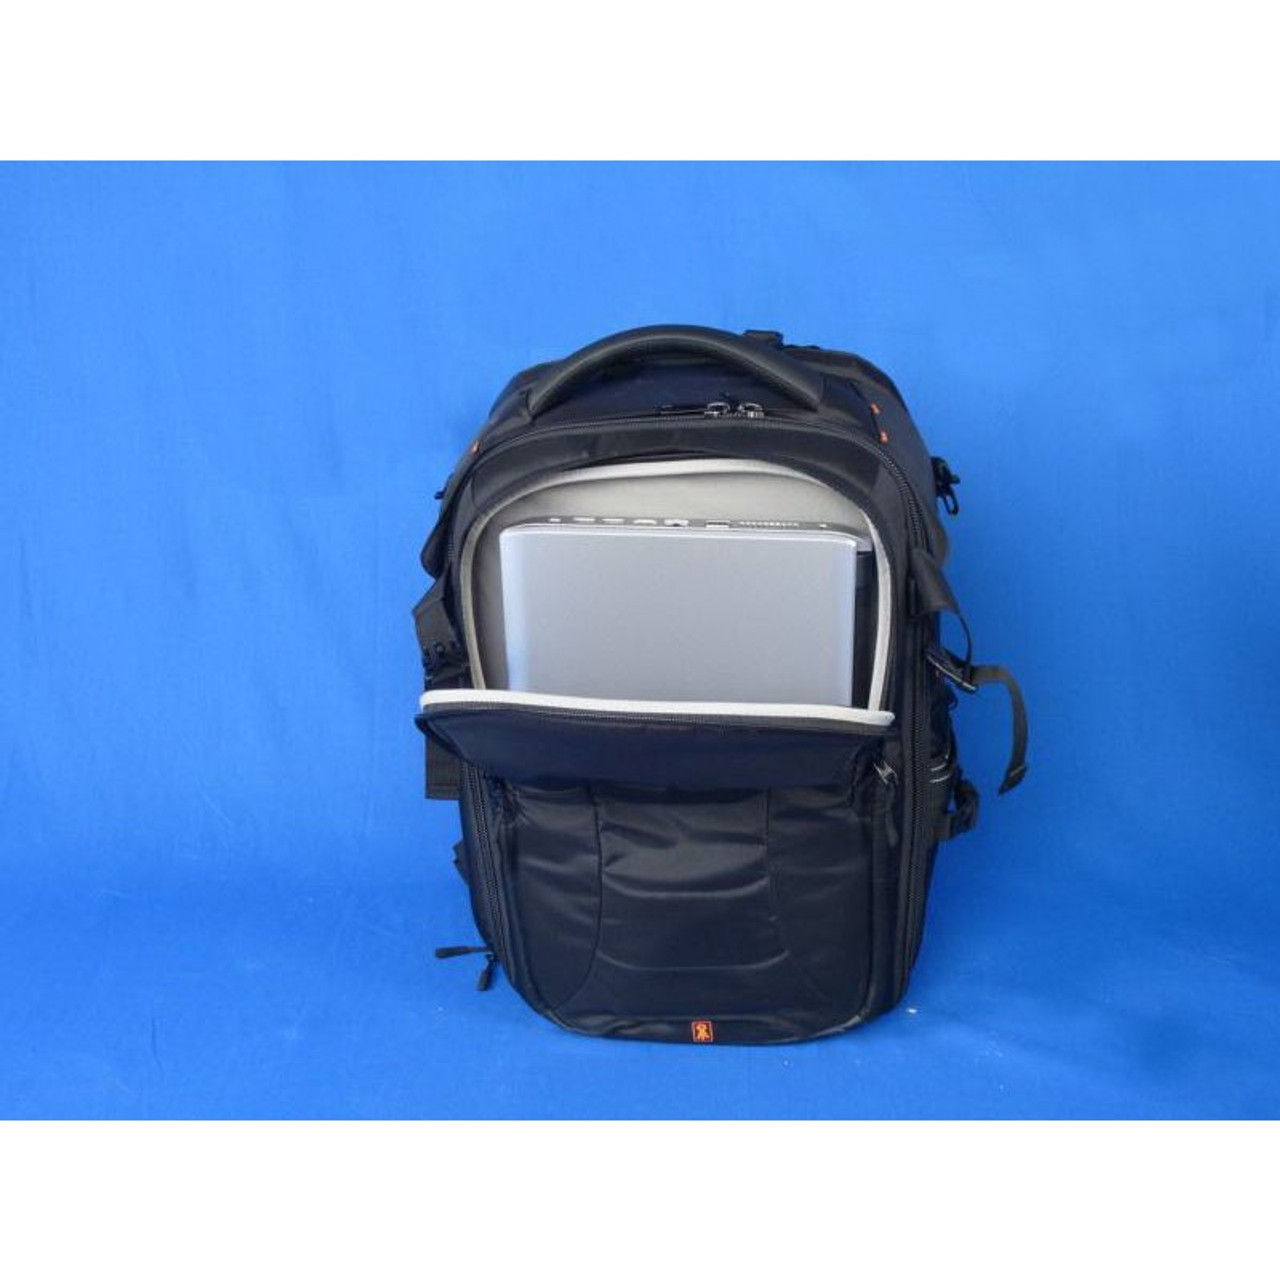 Laser Scanner BackPack (CURRENTLY UNAVAILABLE)